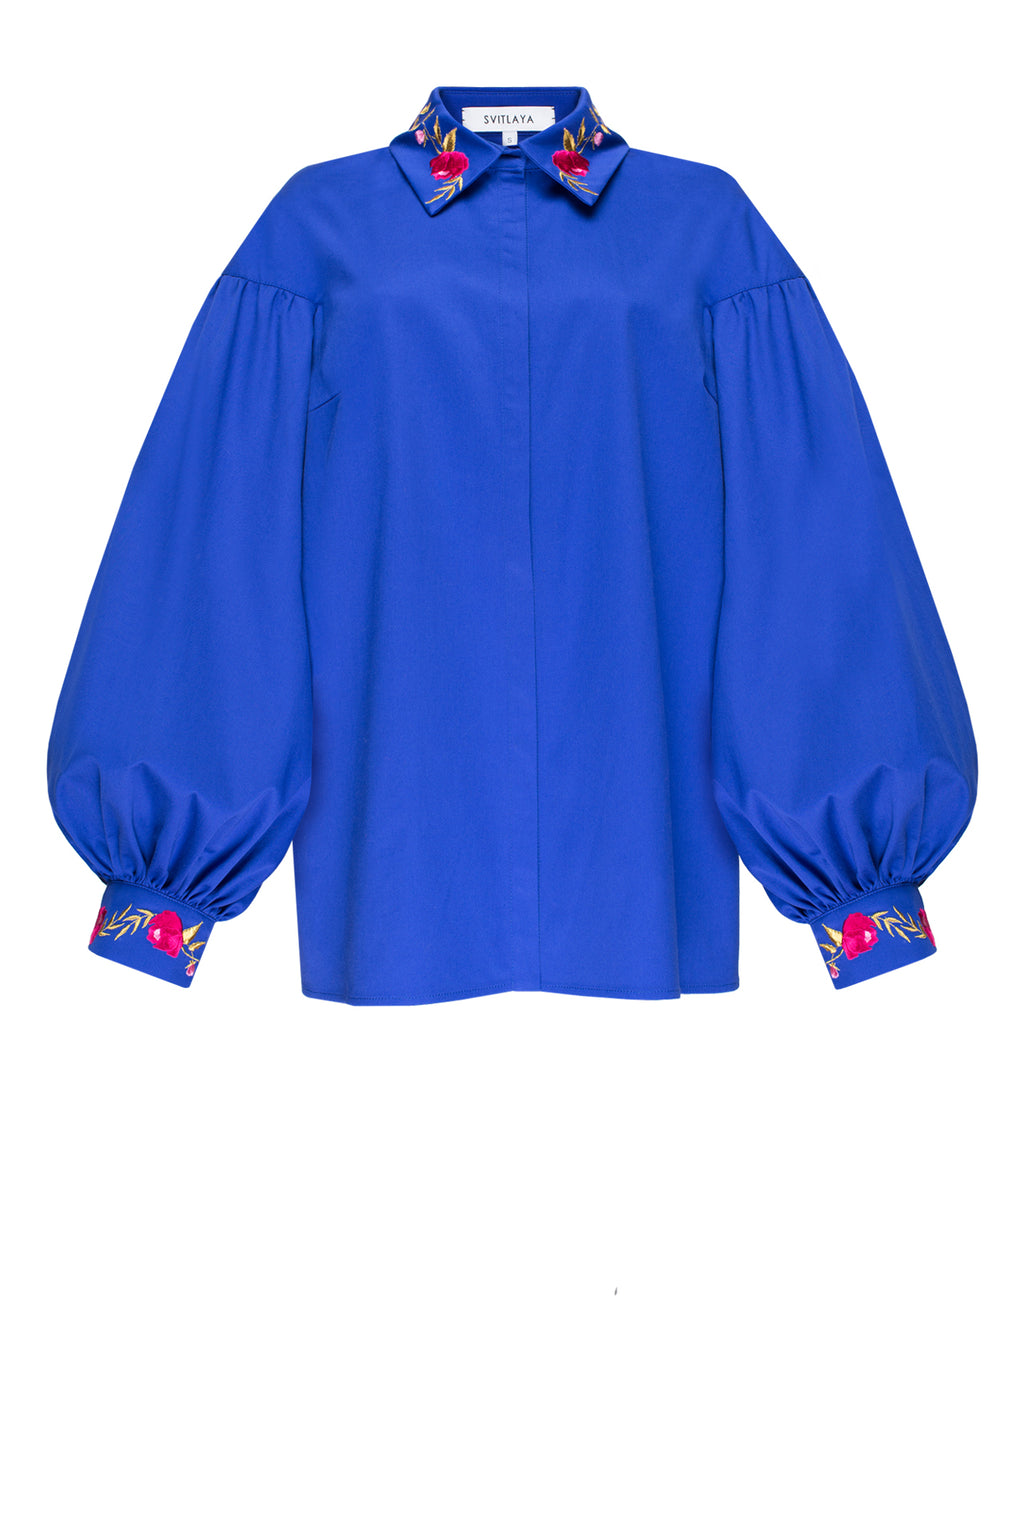 TEA ROSES blouse in royal blue cotton